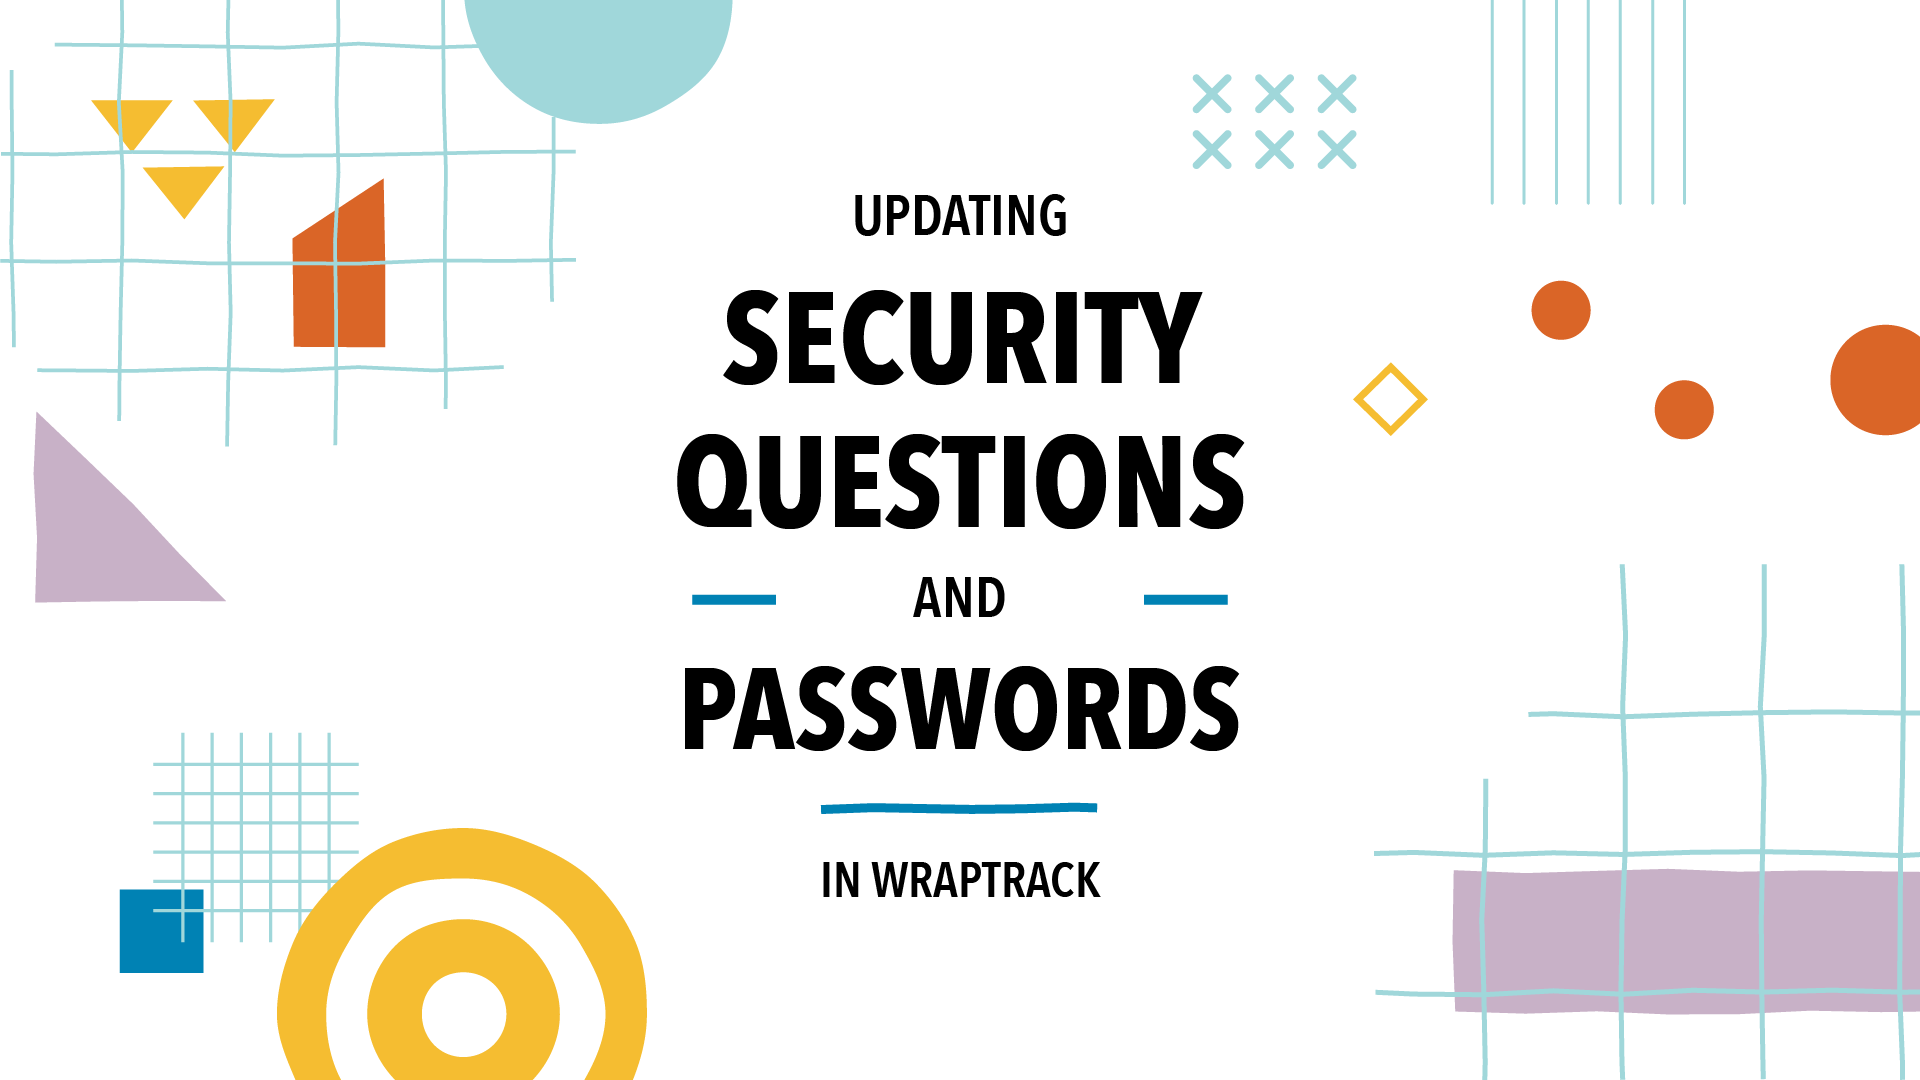 Updating Security Questions and Passwords in WrapTrack